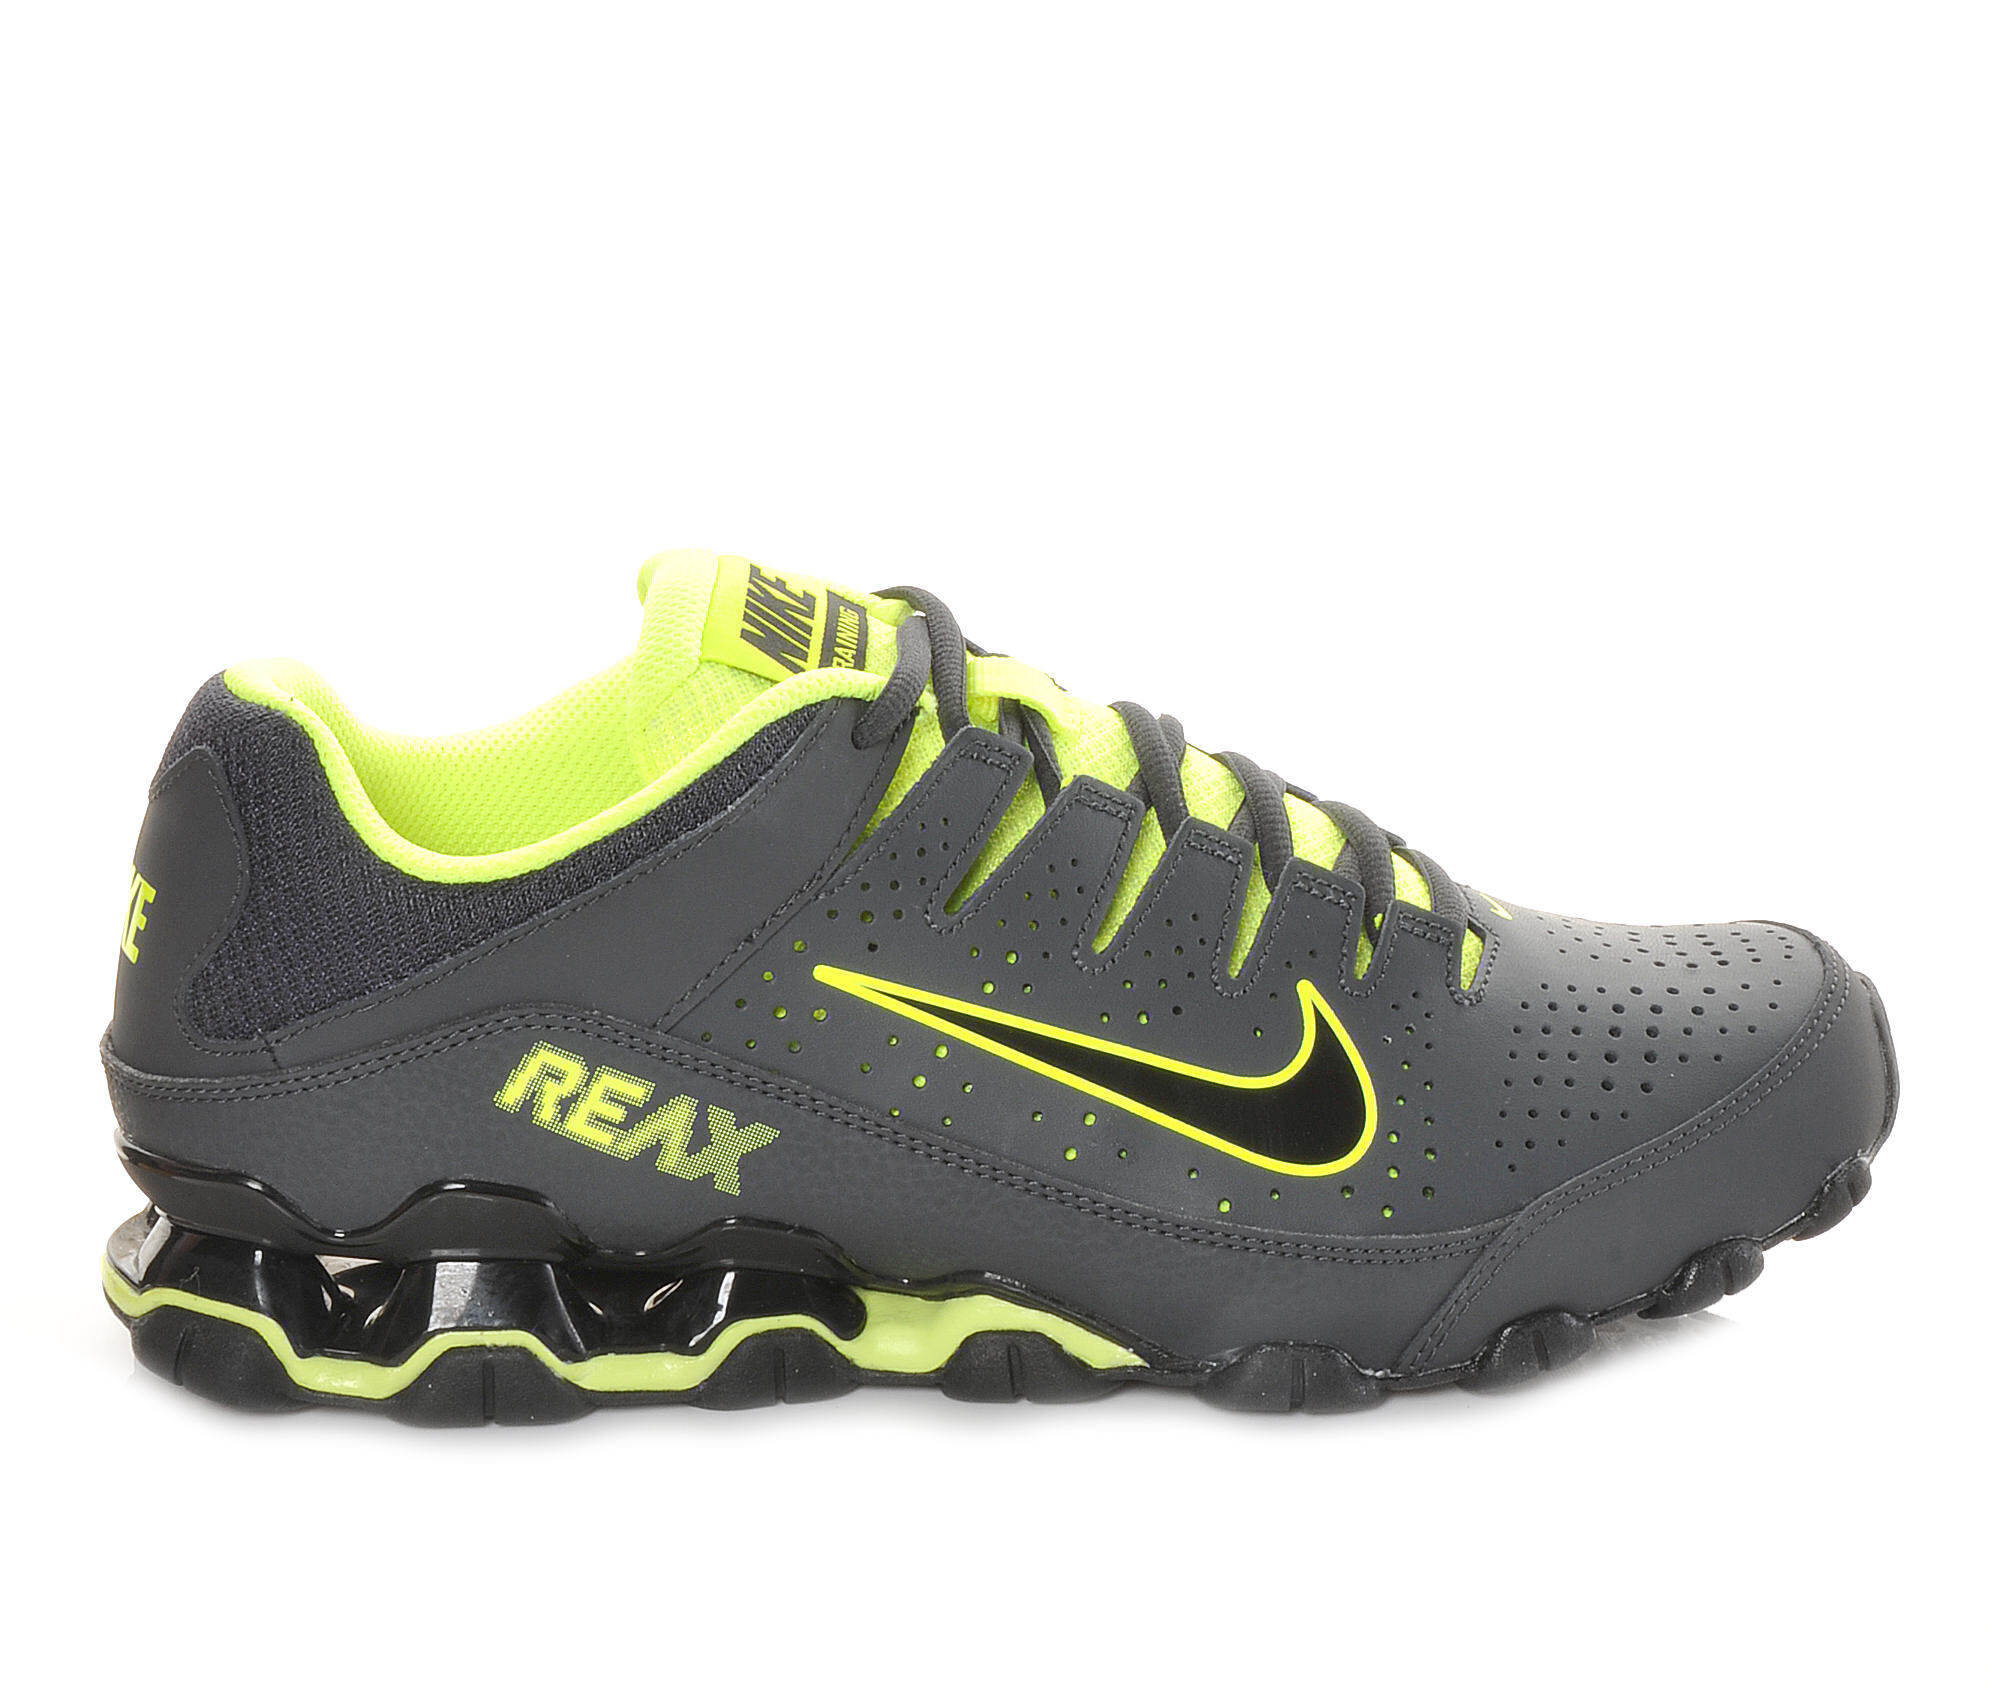 cheap sale extremely latest collections sale online Nike Reax 8 TR Men's Cross ... Training Shoes cheap supply sale low cost PMYmRI